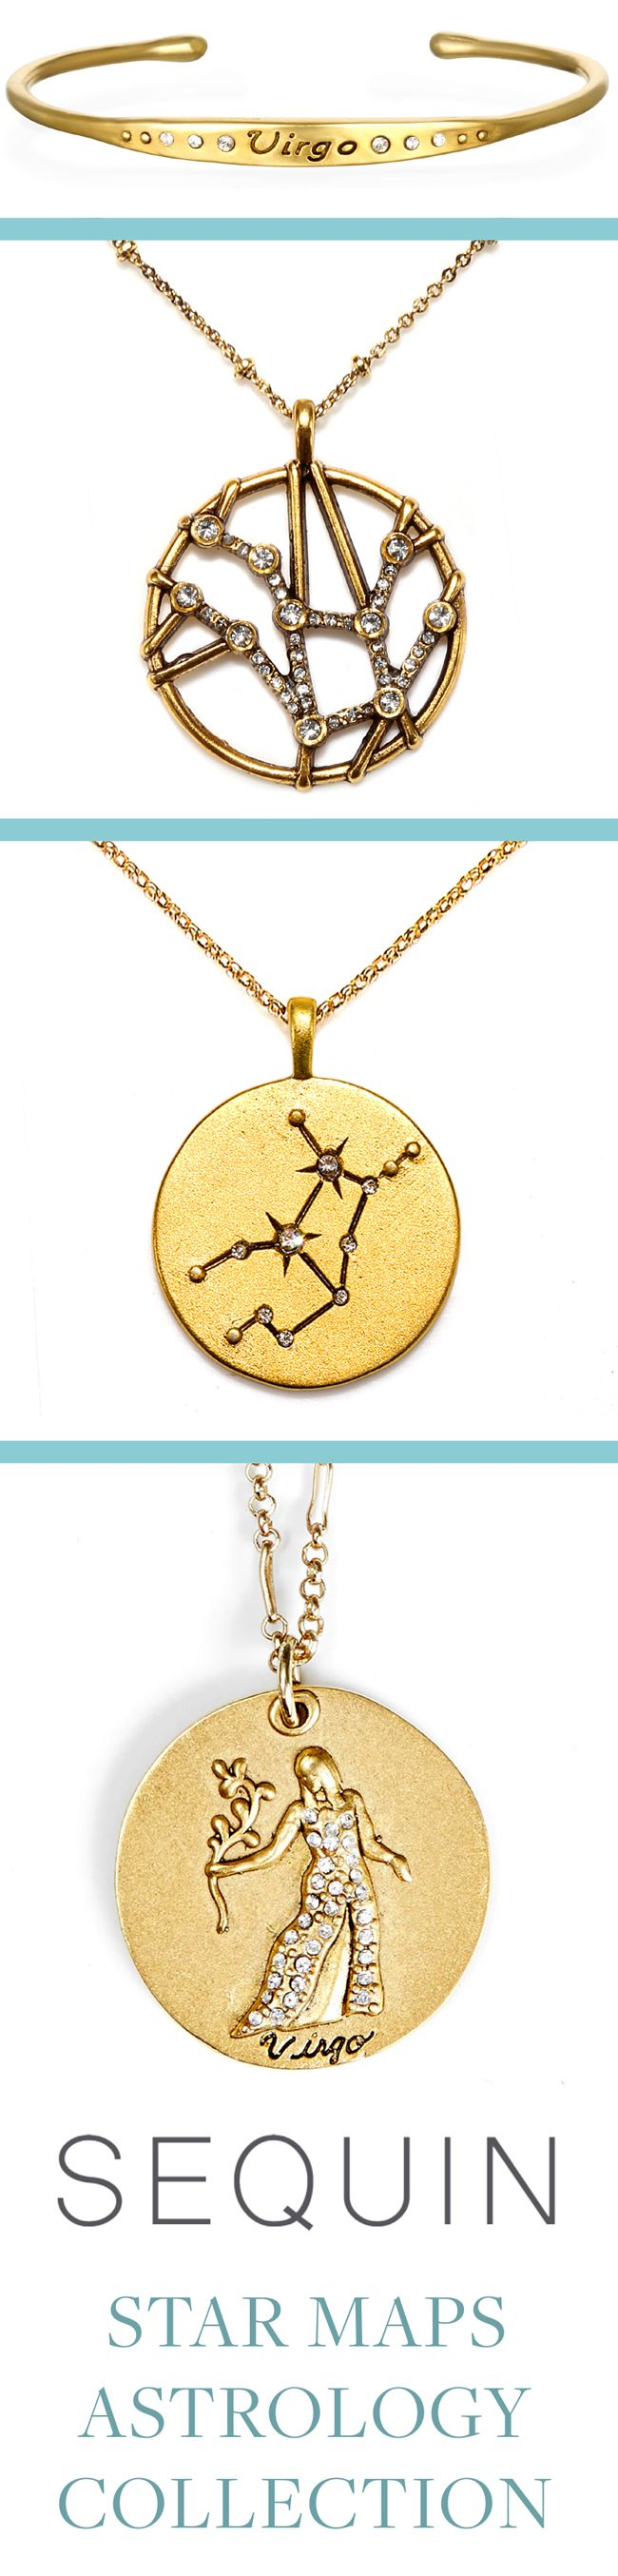 Virgo Astrology Jewelry! Sequin's Star Maps Collection illustrates the twelve astrological signs with beautifully detailed interpretations of constellations and zodiac symbols. Each is 22K antique gold- rose-gold or silver-dipped and cast from an original Sequin illustration. Designed & handcrafted in the USA with components from around the world.